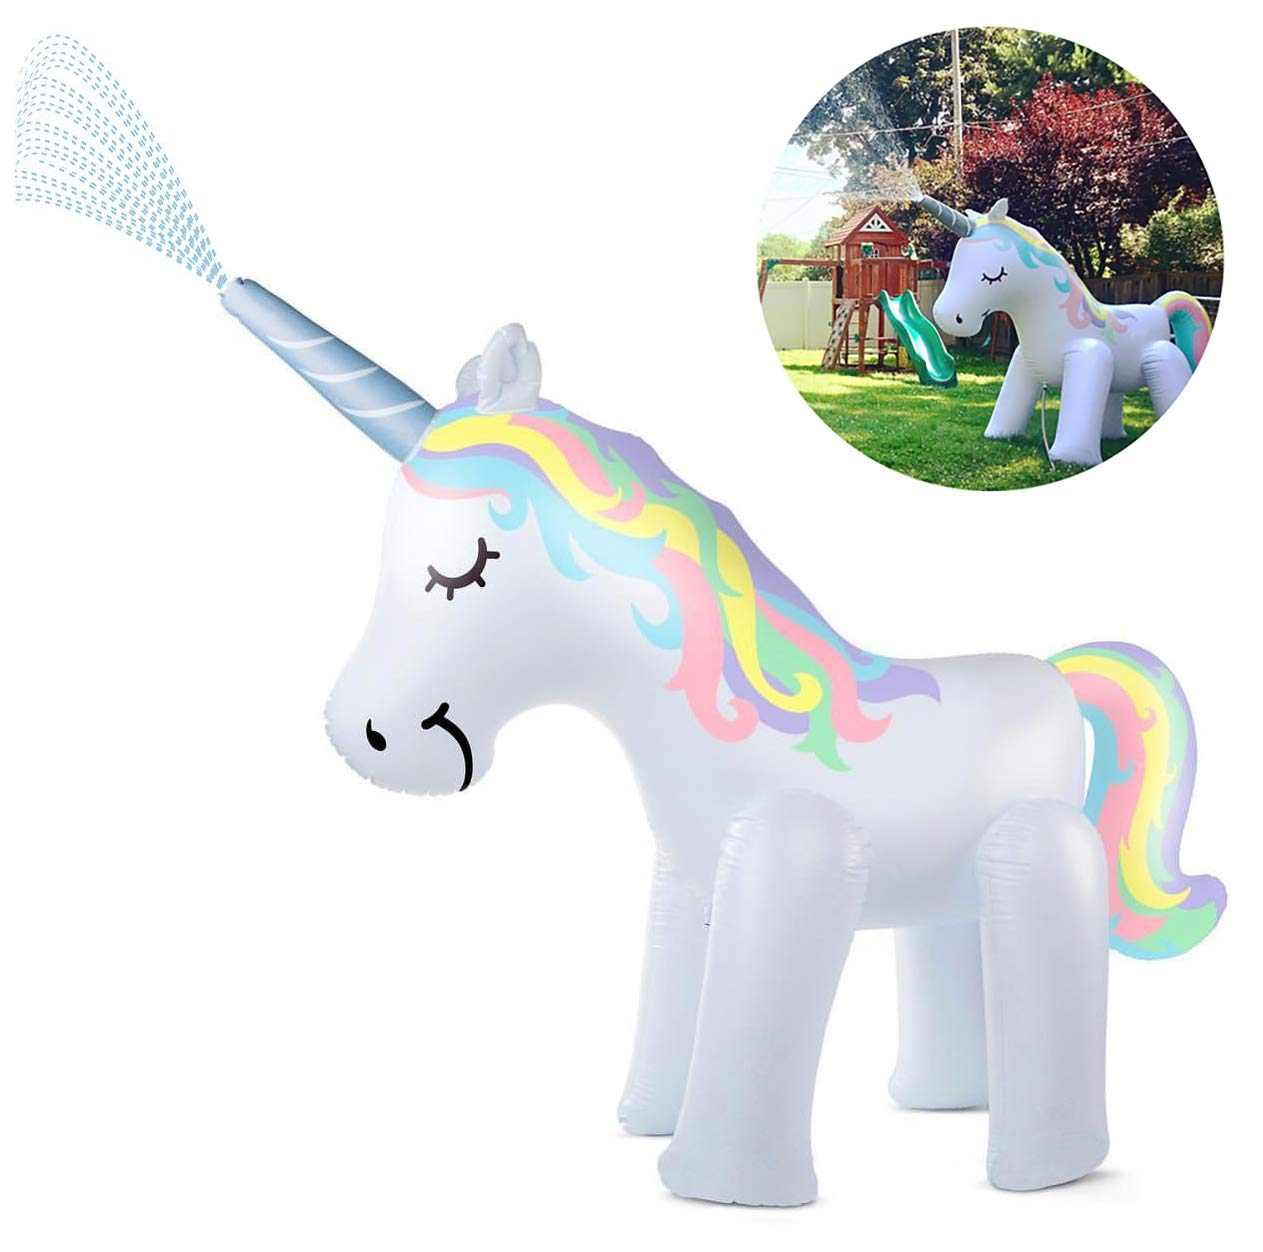 Kimi House Giant Inflatable Unicorn Sprinkler with Over 4.8 Feet Tall, 6.6Feet Long, Water Toys, Yard Summer Sprinkler… 3